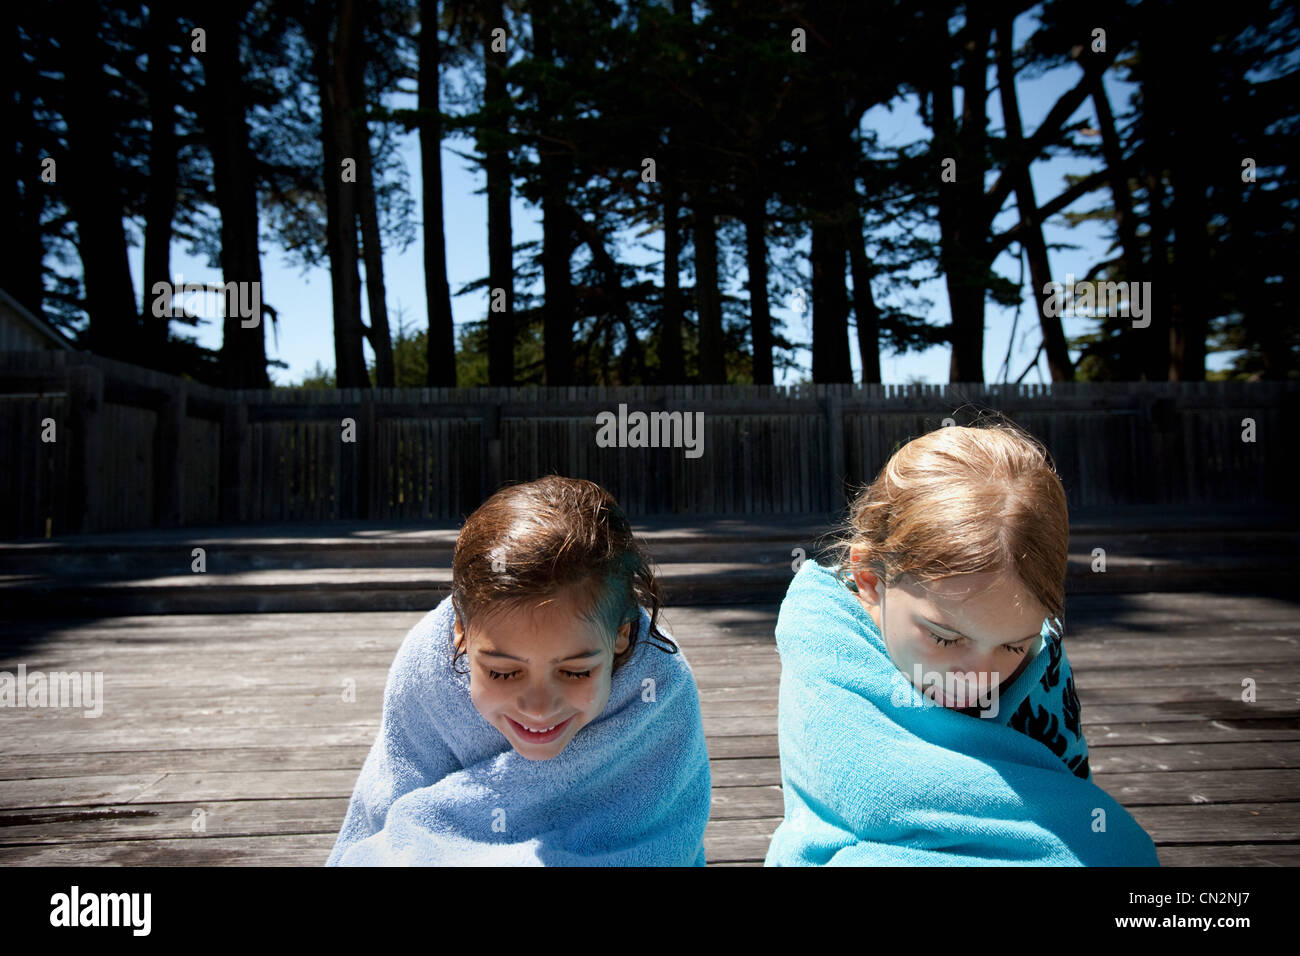 Two children wrapped in towels - Stock Image